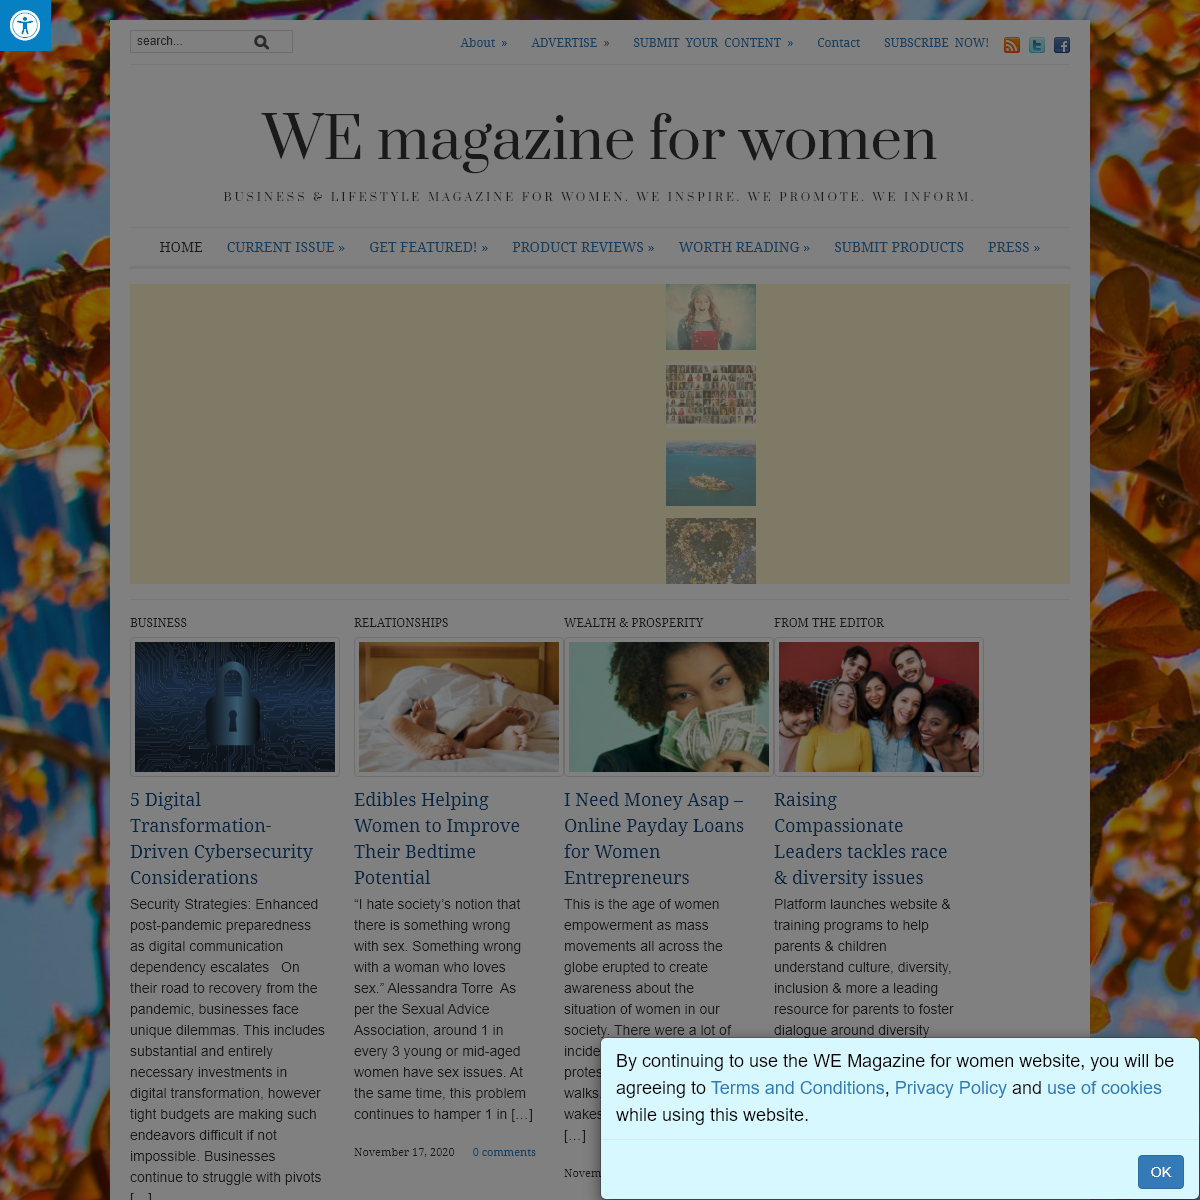 WE magazine for women - Business & Lifestyle Magazine for Women. WE Inspire. WE Promote. WE Inform.